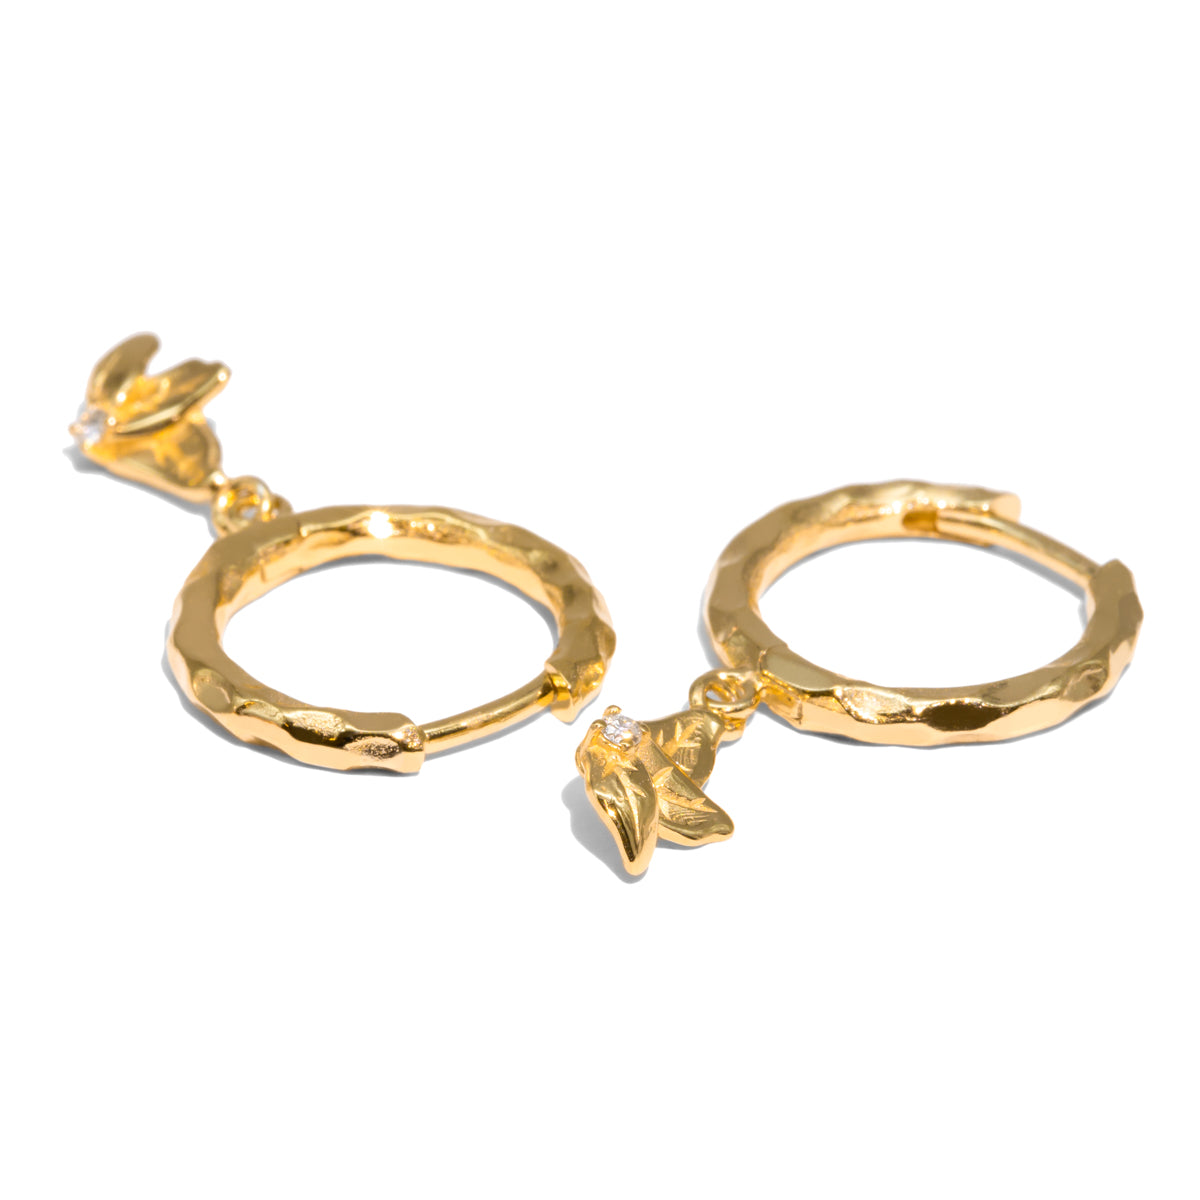 The Gold Diamond Bee Hoop Earrings